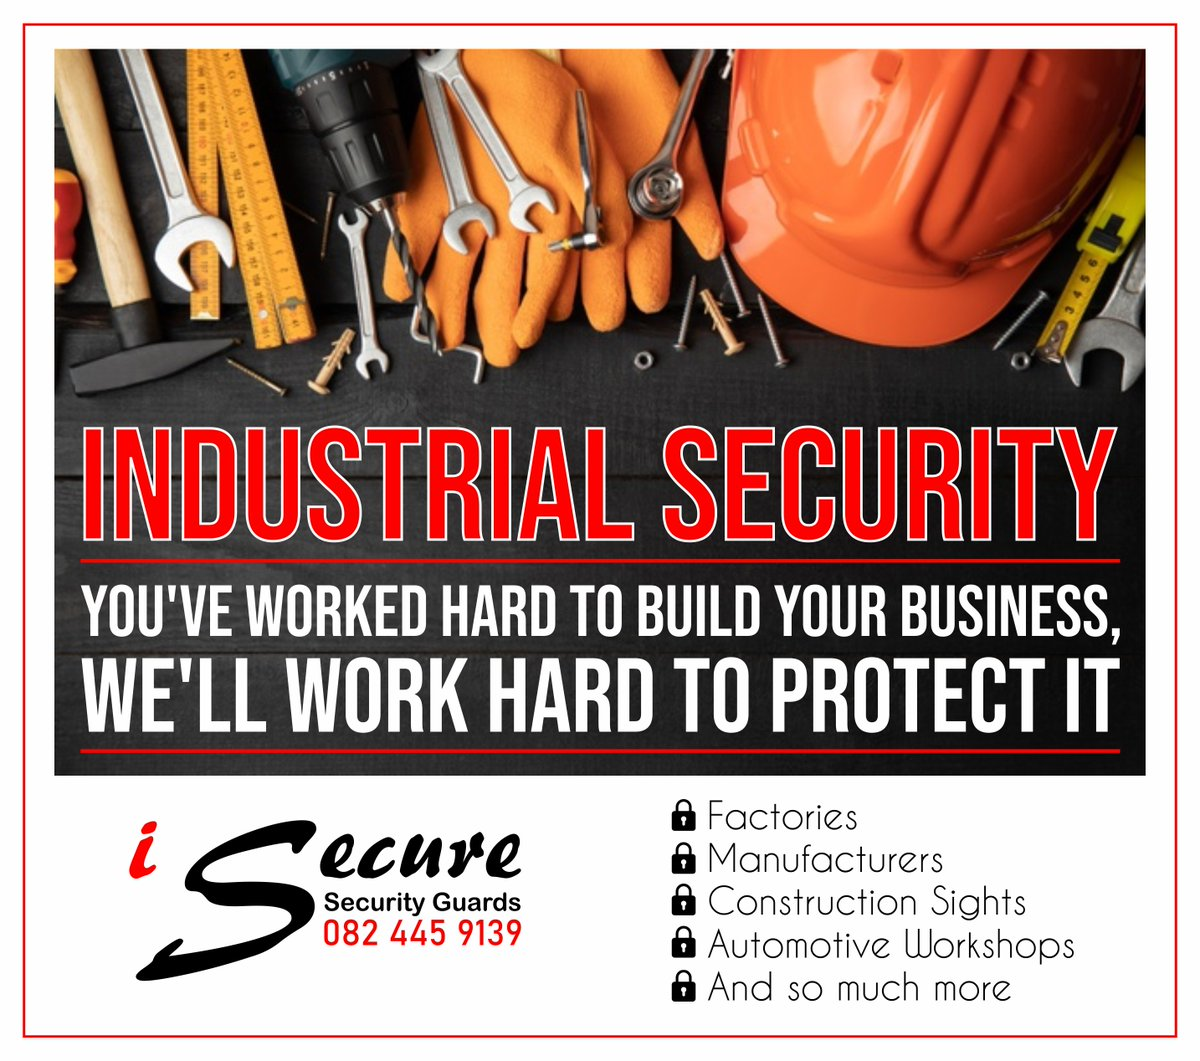 iSecure provides all types of Security and Patrolling services in the Nelspruit, Mpumalanga area.  #iSecure #securityguards #mbombela #nelspruit #vipprotection #patrolling #propertyguarding #assetguarding #accesscontrol #safetyconsultancy #crimeprevention https://t.co/jJh6oib45G